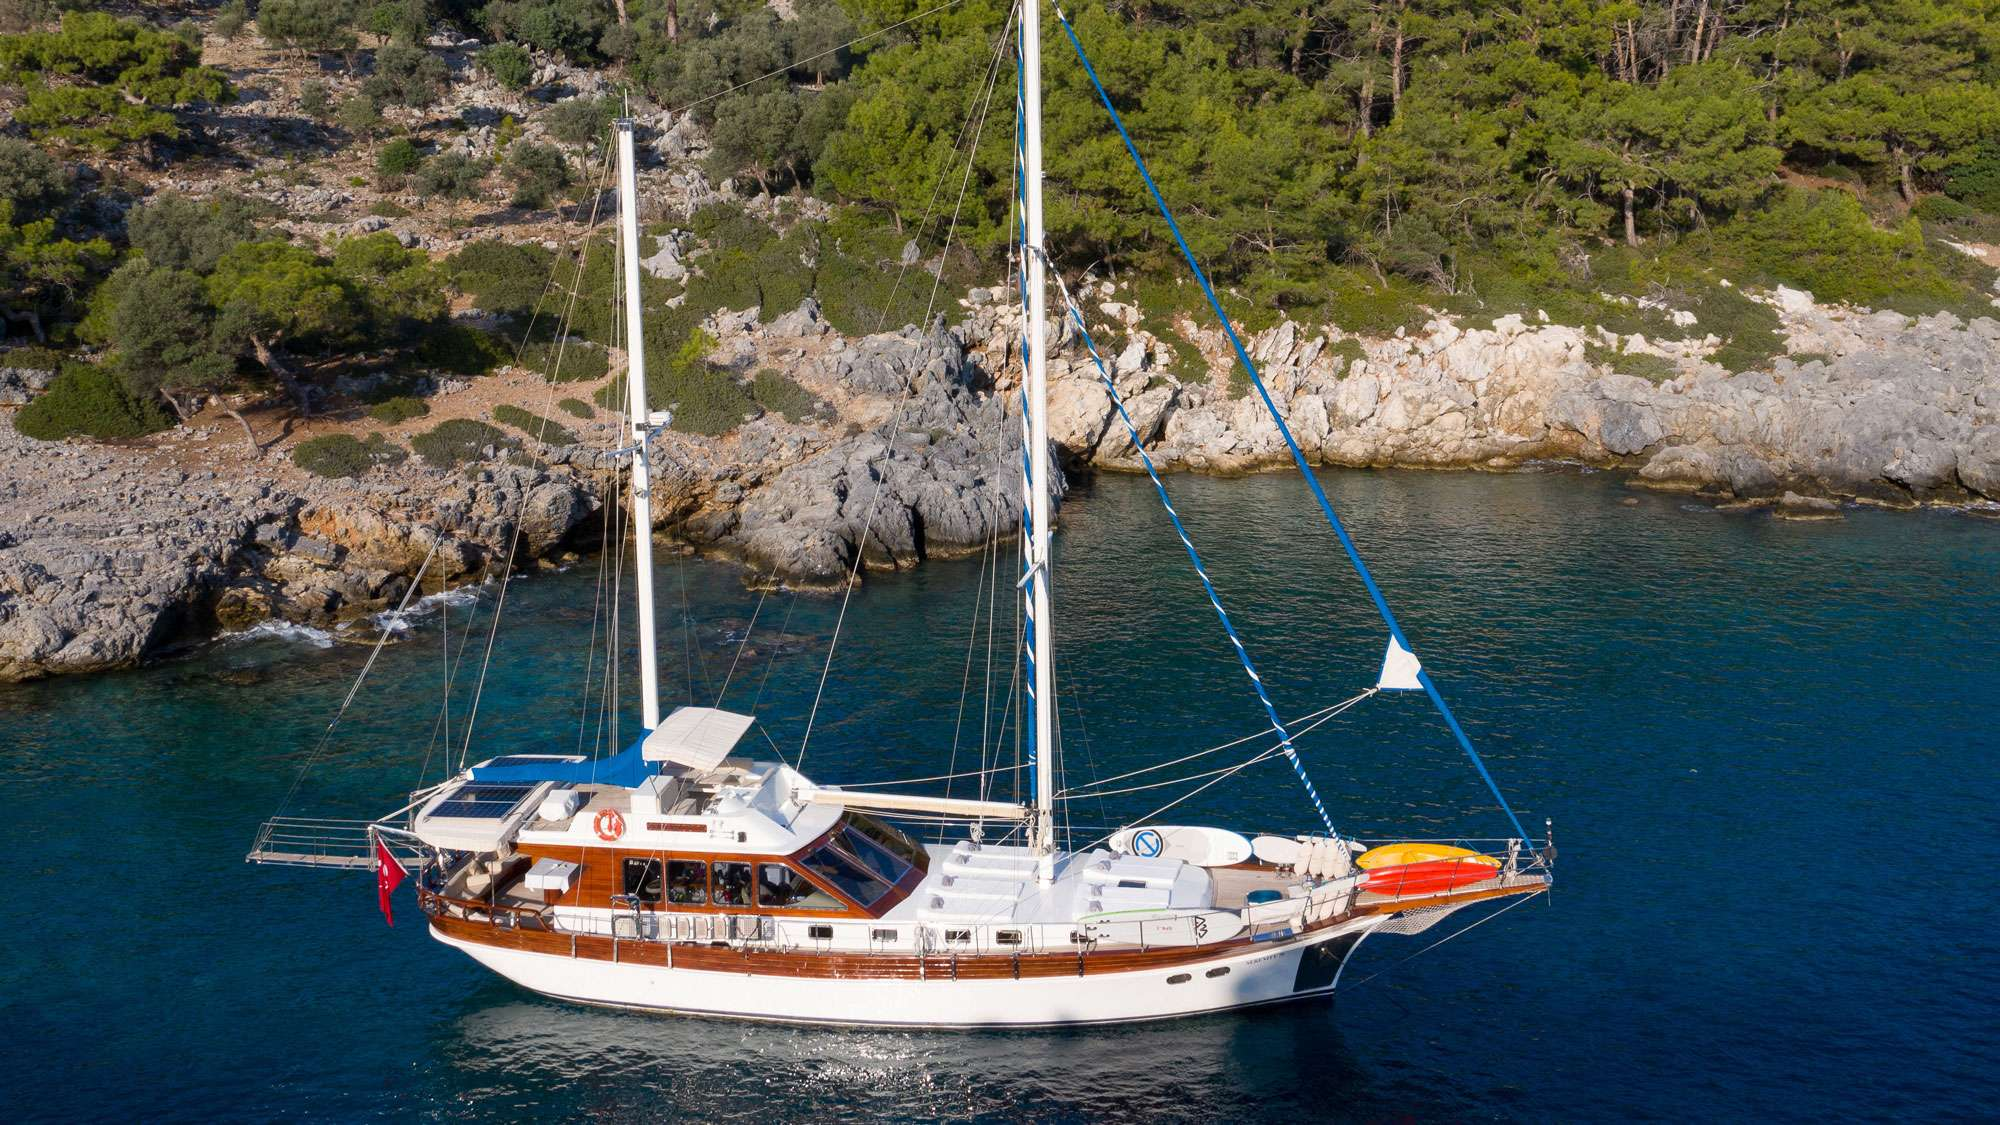 In current times when the industry is concentrating more and more on larger yachts, Serenity 70 is one of the few motor sailers that is available for charter in the East Med which is modest in size and budget without compromising on luxury and comfort. She has a very cosy honeymooner master cabin with a white interior and four portholes that flood in reflections from the sea. The remaining two double cabins are smaller in size and ideal for children or younger adults, though throughout her charter history this vessel has successfully accommodated six adults during many charters. Taking into consideration that guests will spend almost all their time outdoors, the limited space of the two double cabins is over shadowed by the comfortable aft dining area, inviting flybridge, ideal forward sun tanning area and the variety of amenities and water toys that you would normally only find aboard much larger vessels. The salon is very functional and includes a traditionally designed bar area with high seats facing panoramic views of the outside that is just perfect for enjoying an evening drink with friends and crew.